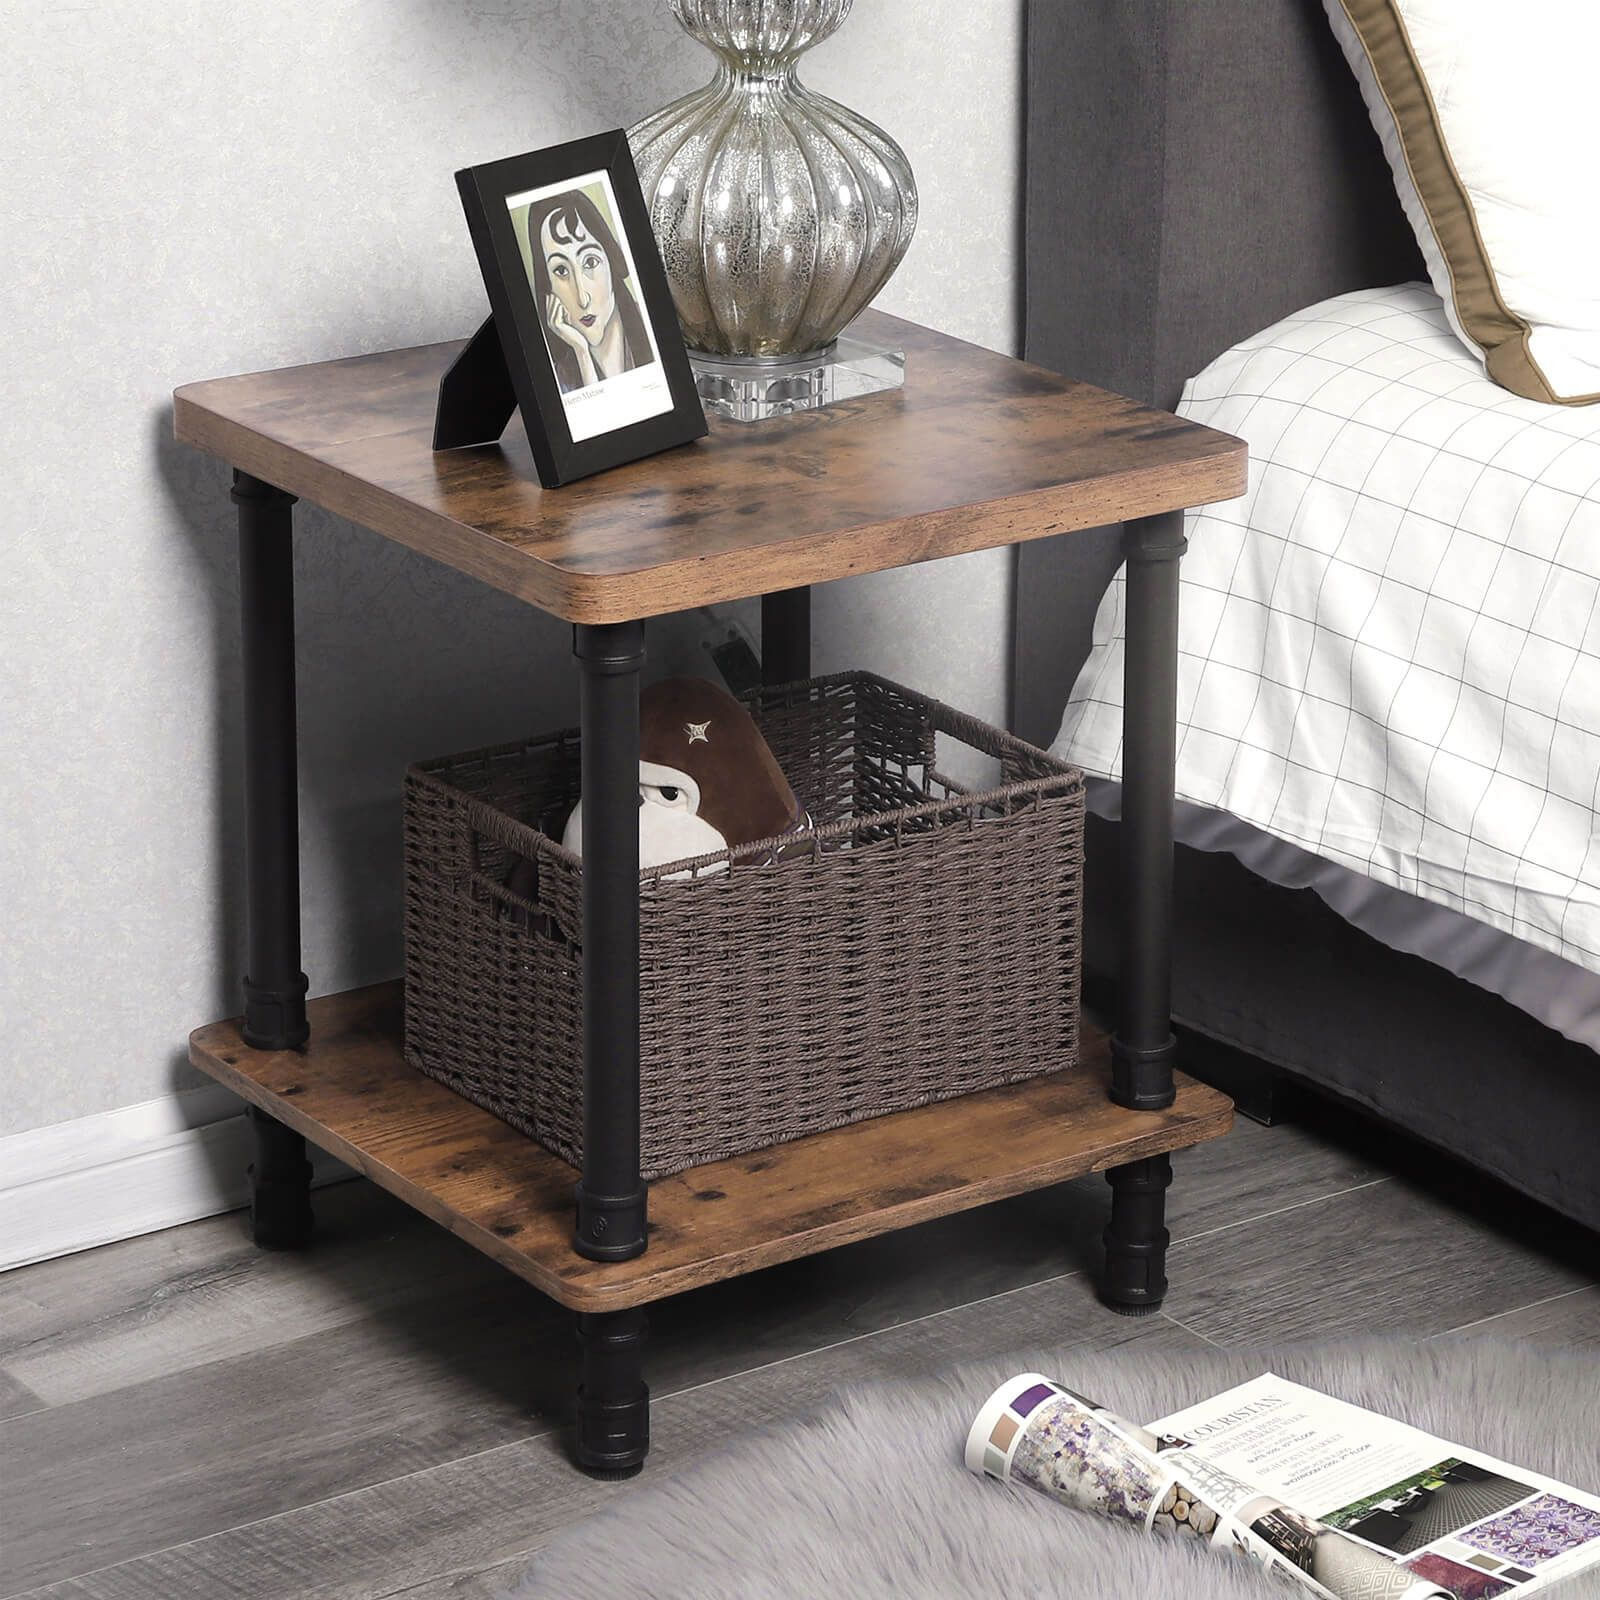 Industrial Side Table Side Table In 2020 Table Decor Living Room Industrial Side Table Side Table Decor